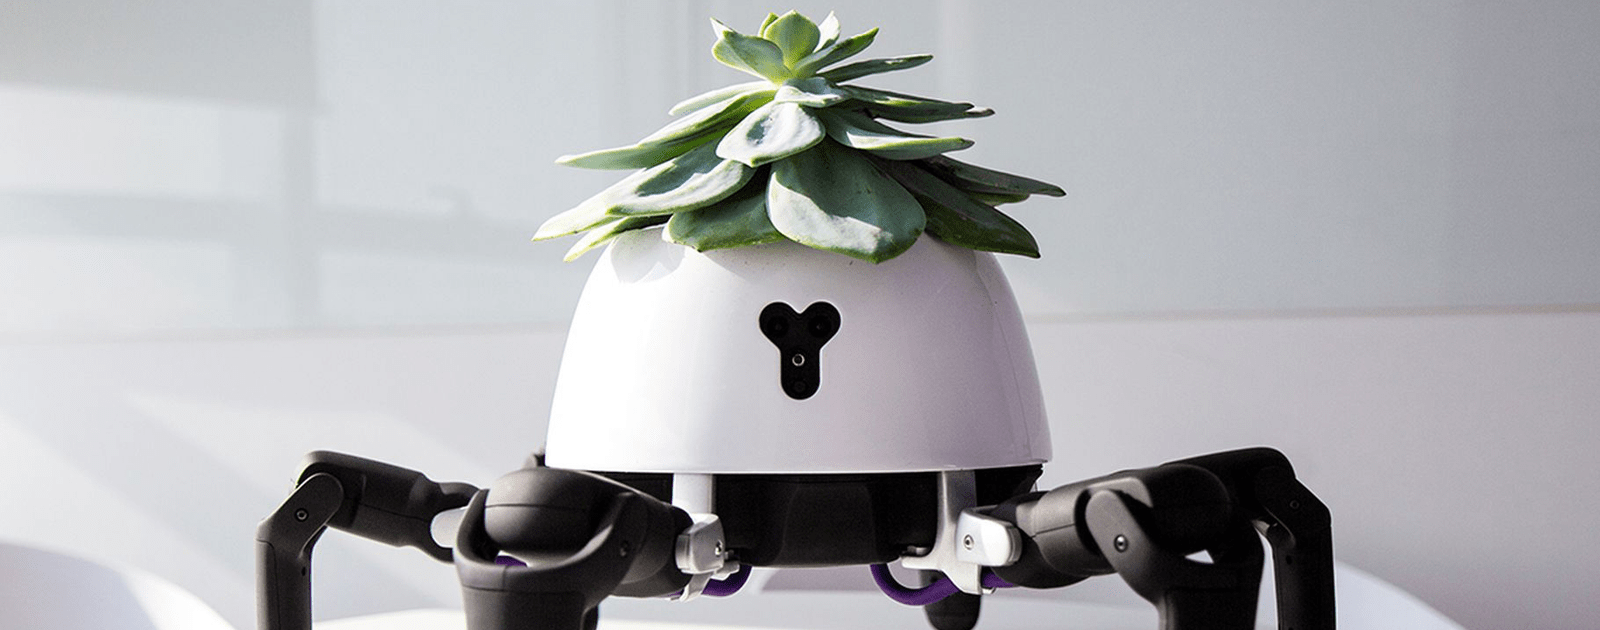 This Robot Gardener Chases After Sunlight